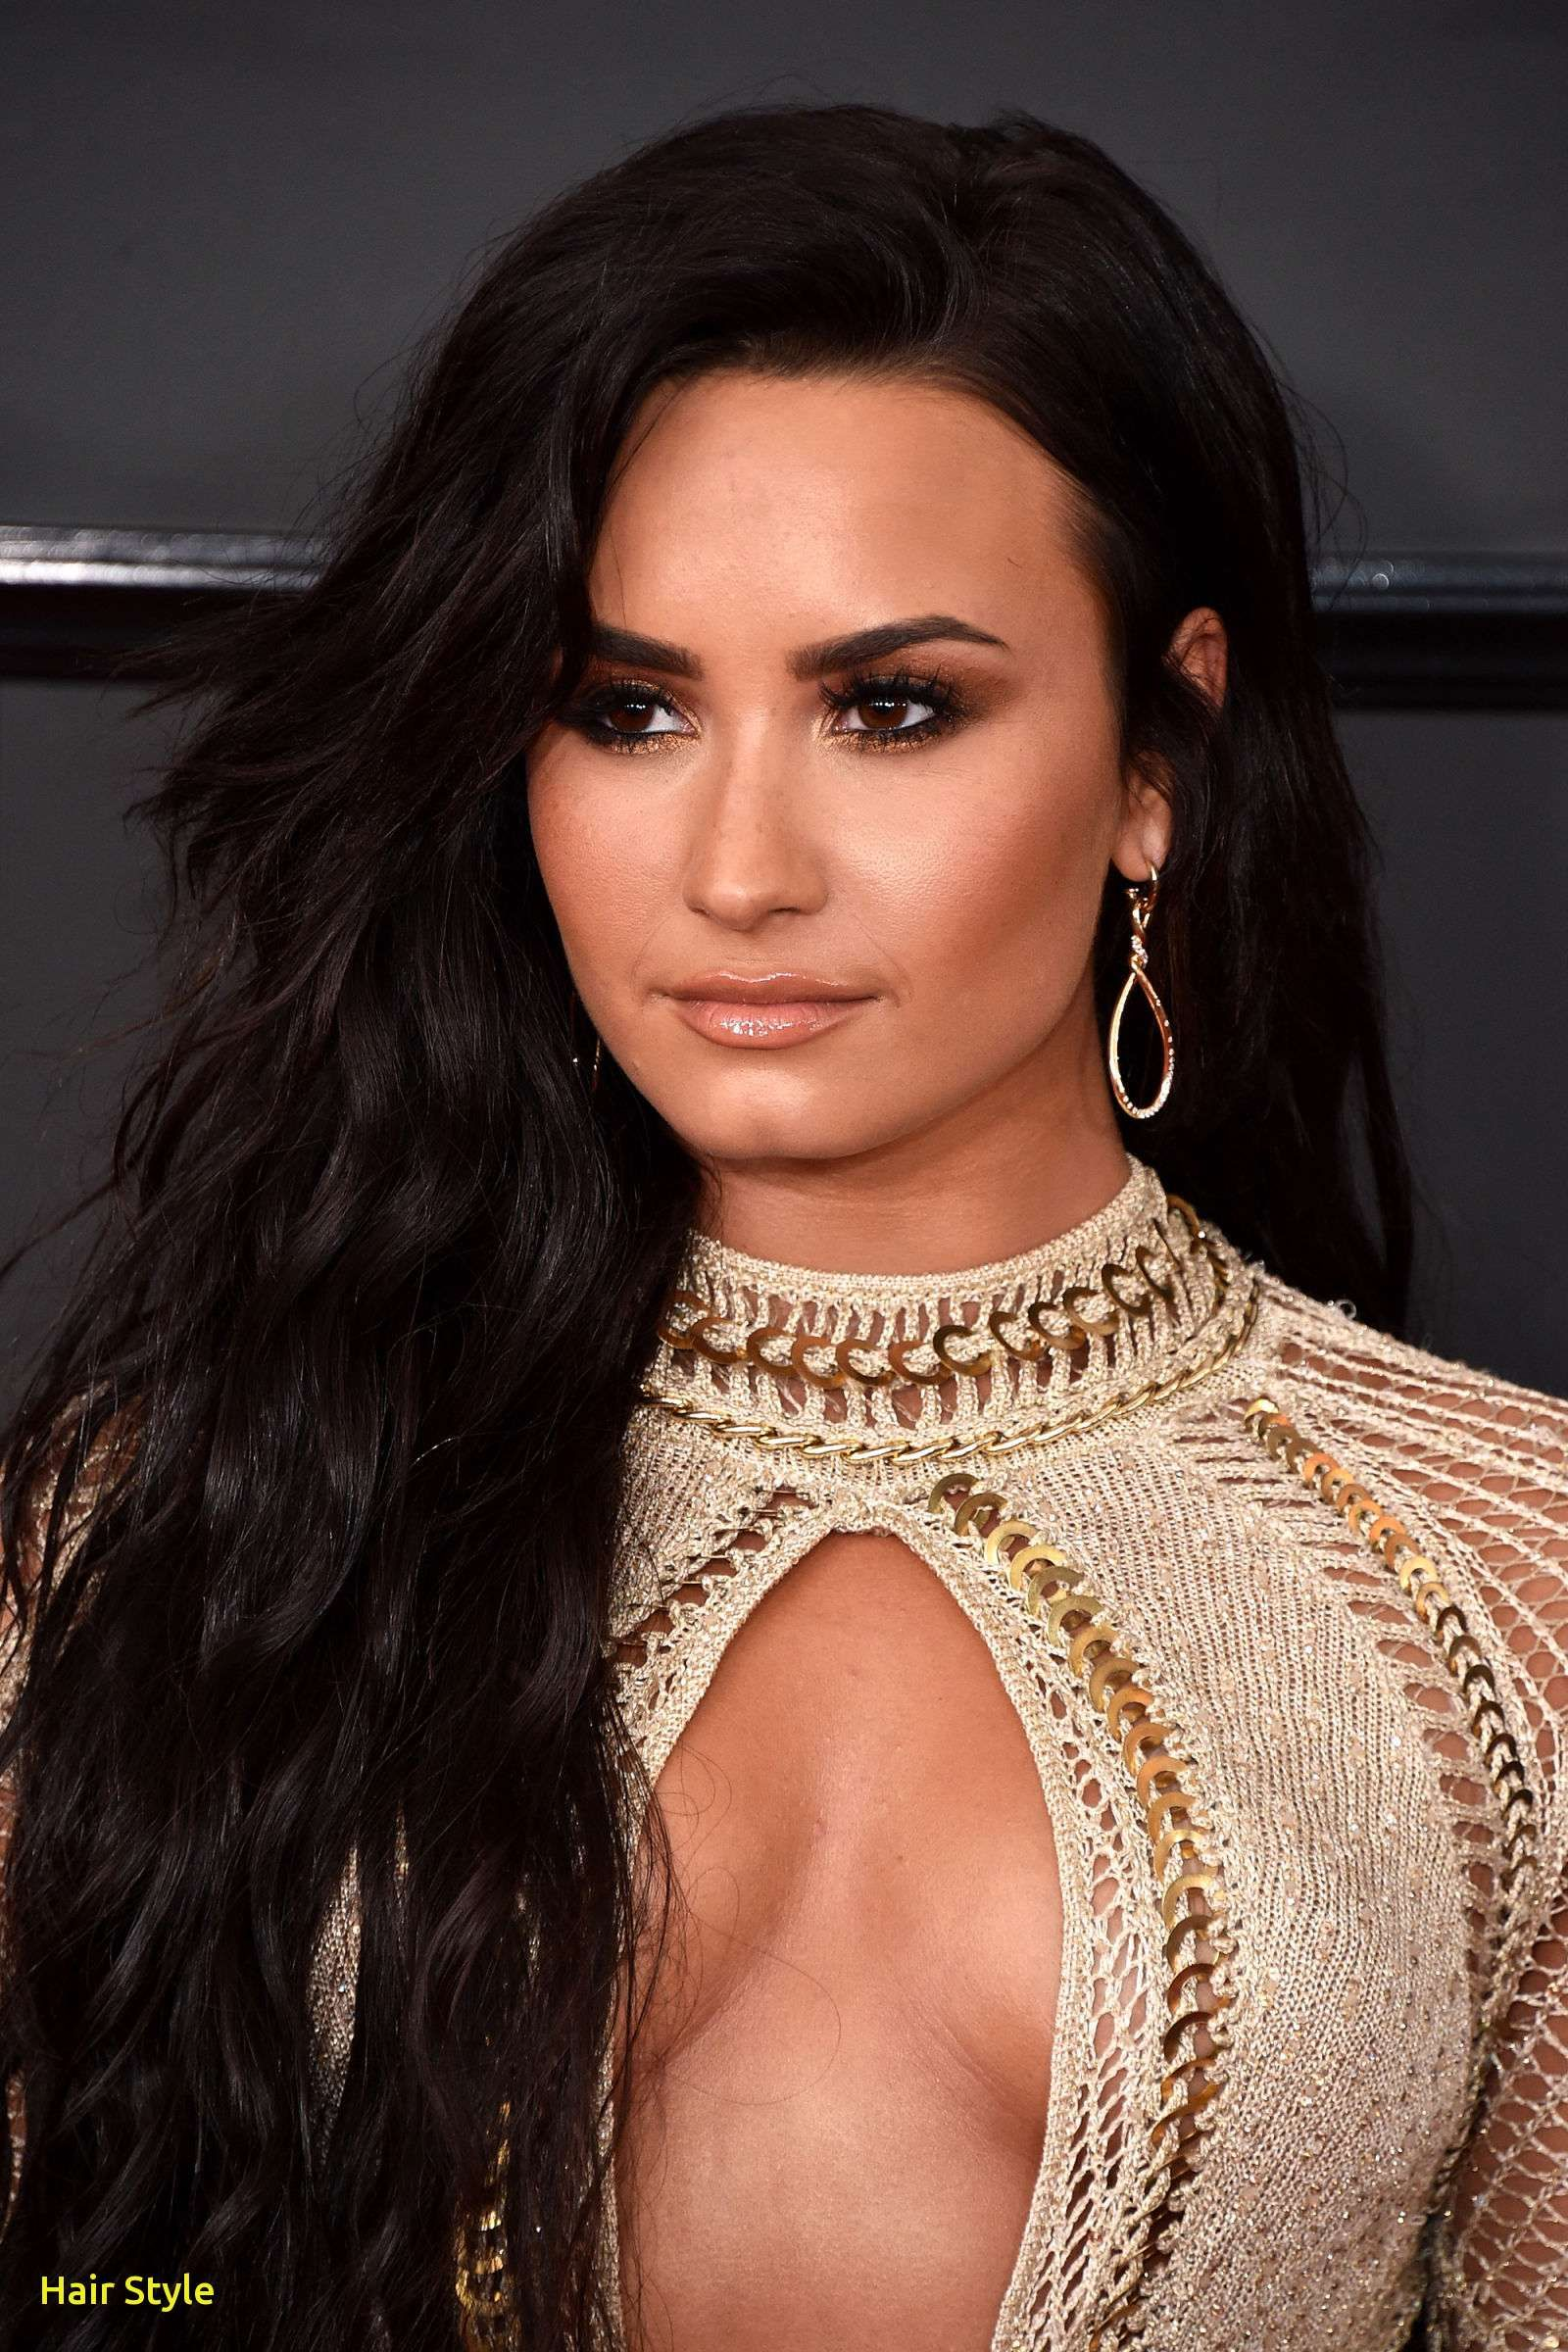 Who is demi lovato currently dating 2019 honda